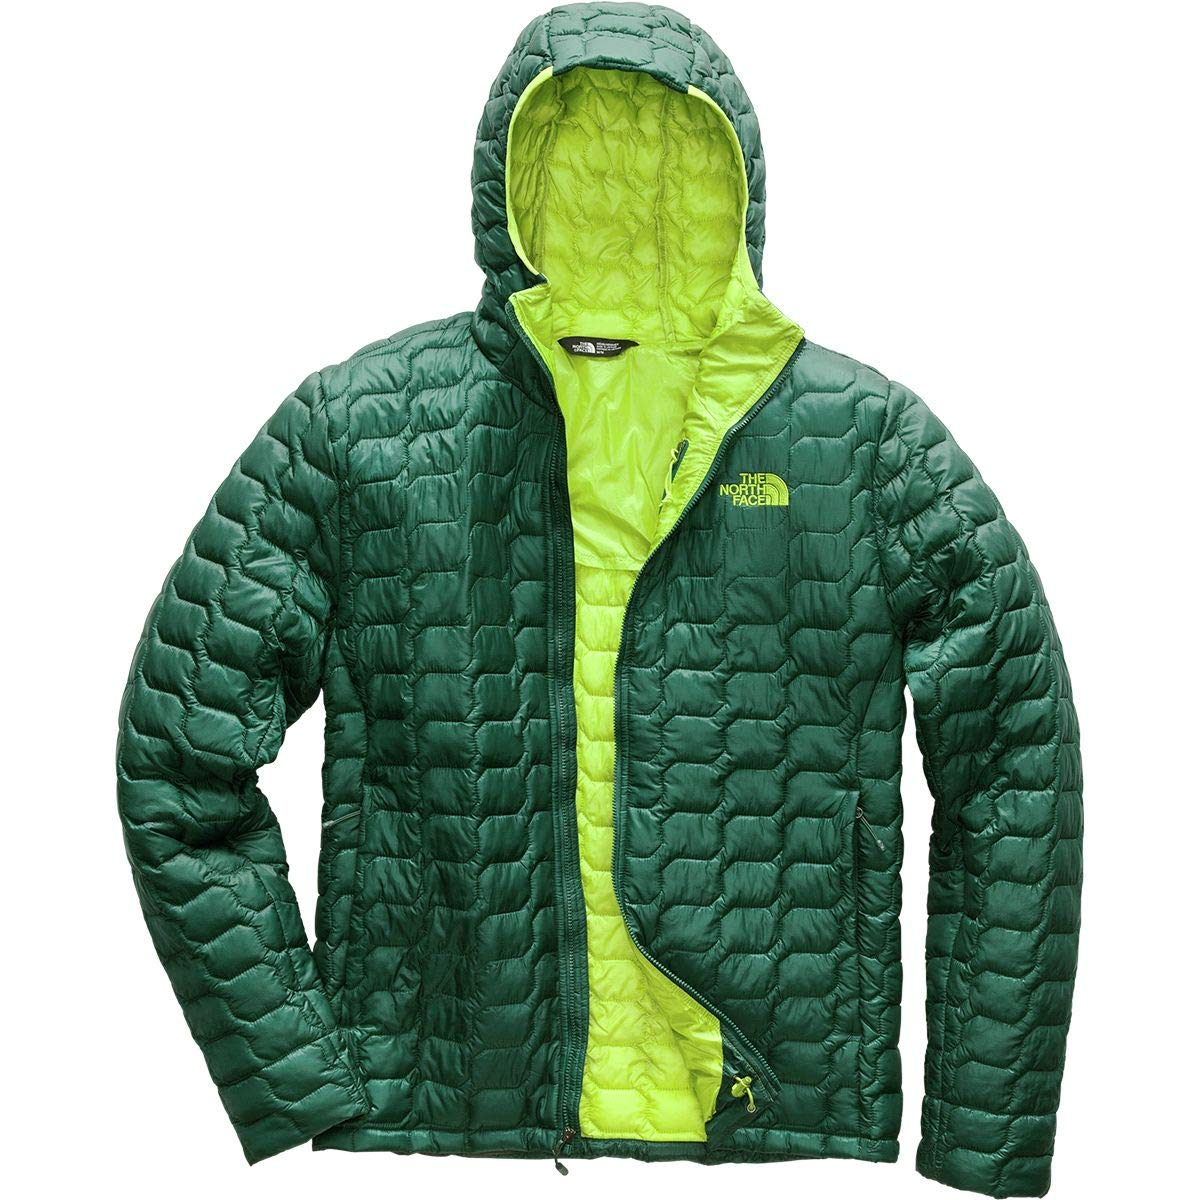 The North Face Men's Thermoball Hoodie - Botanical Garden Green - S